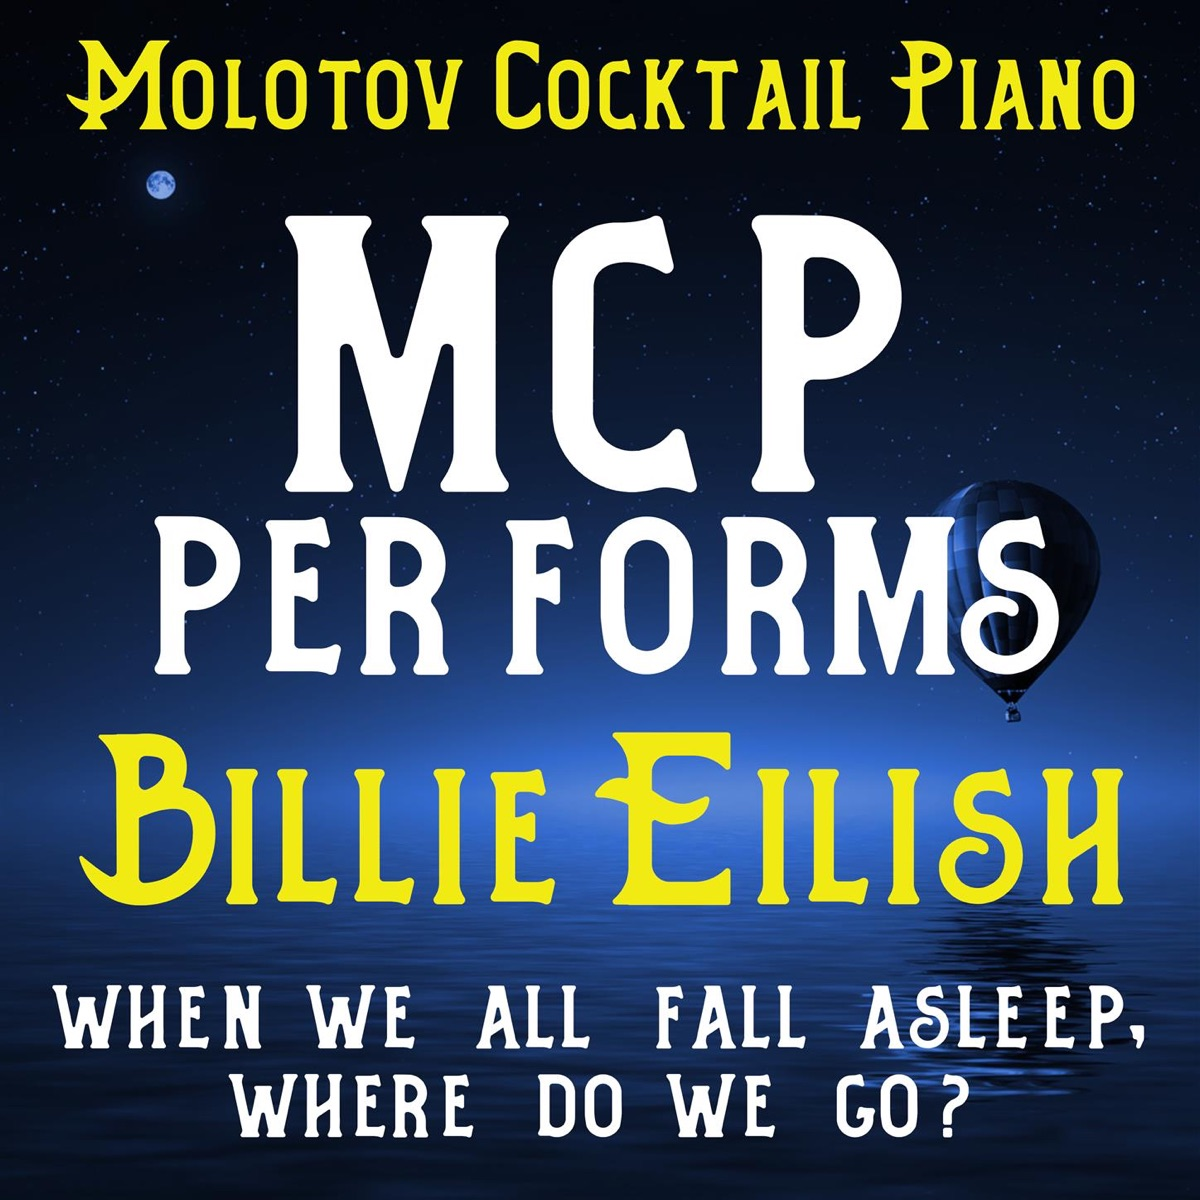 MCP Performs Billie Eilish When We All Fall Asleep Where Do We Go Instrumental Molotov Cocktail Piano CD cover